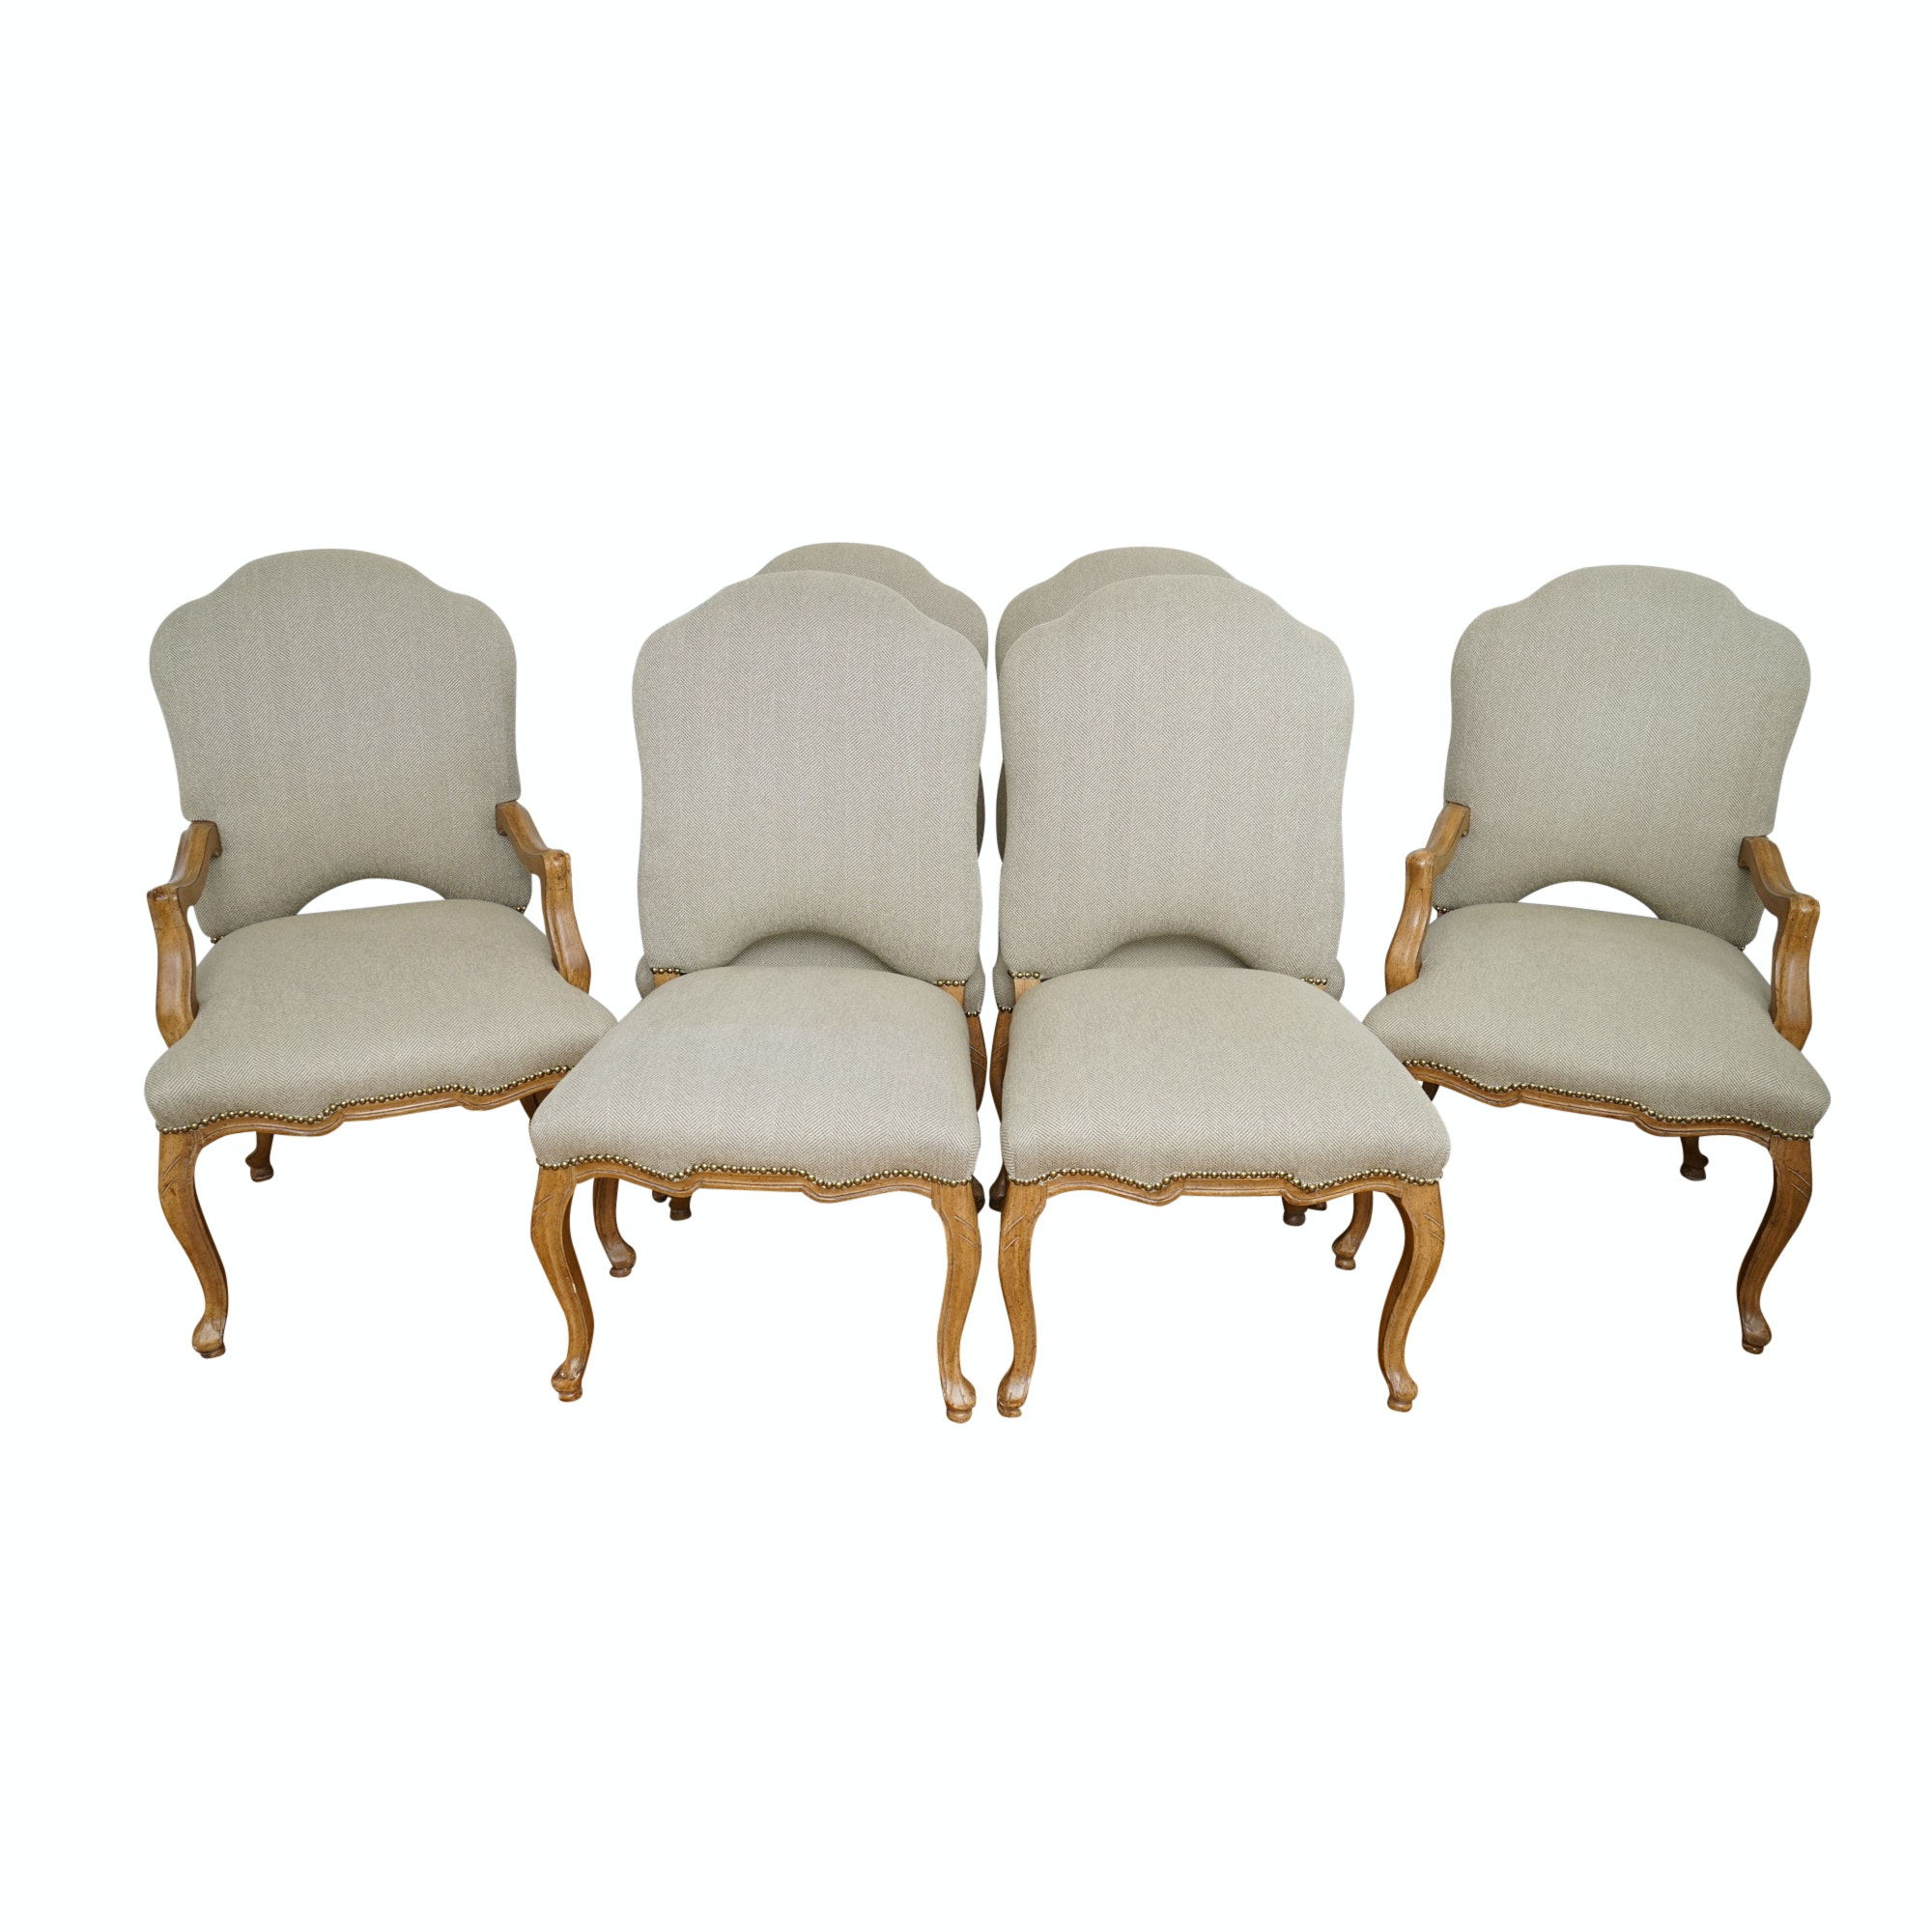 French Provincial Style Herringbone Upholstered Dining Chairs